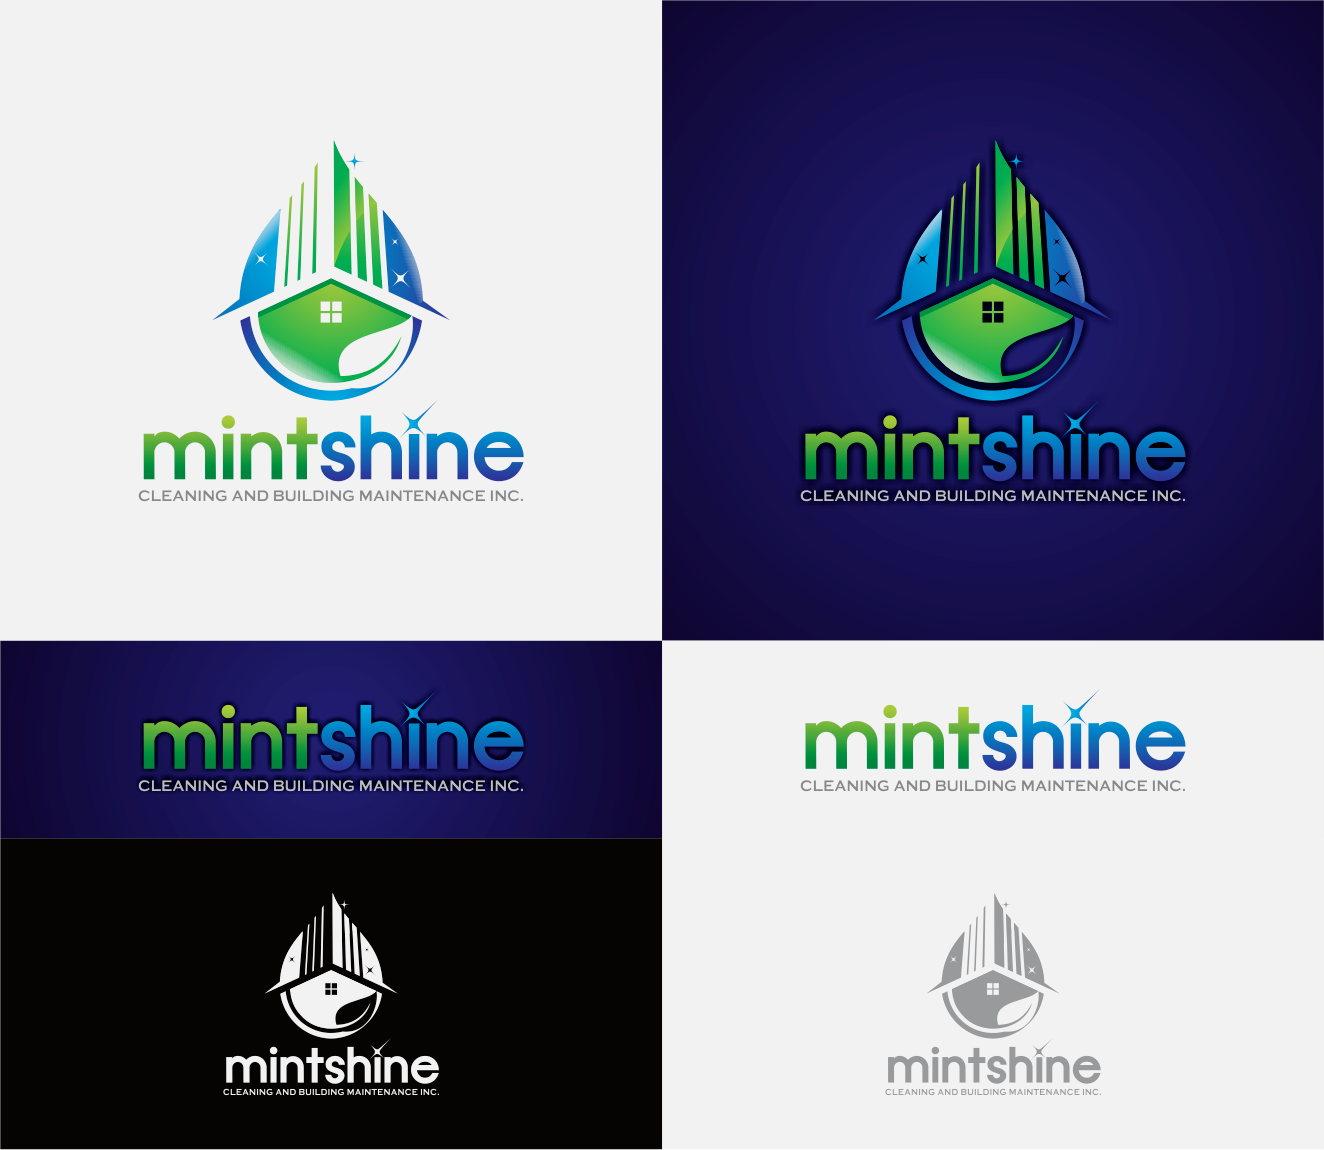 Logo Design by Armada Jamaluddin - Entry No. 53 in the Logo Design Contest New Logo Design for mintSHINE cleaning and building maintenance.